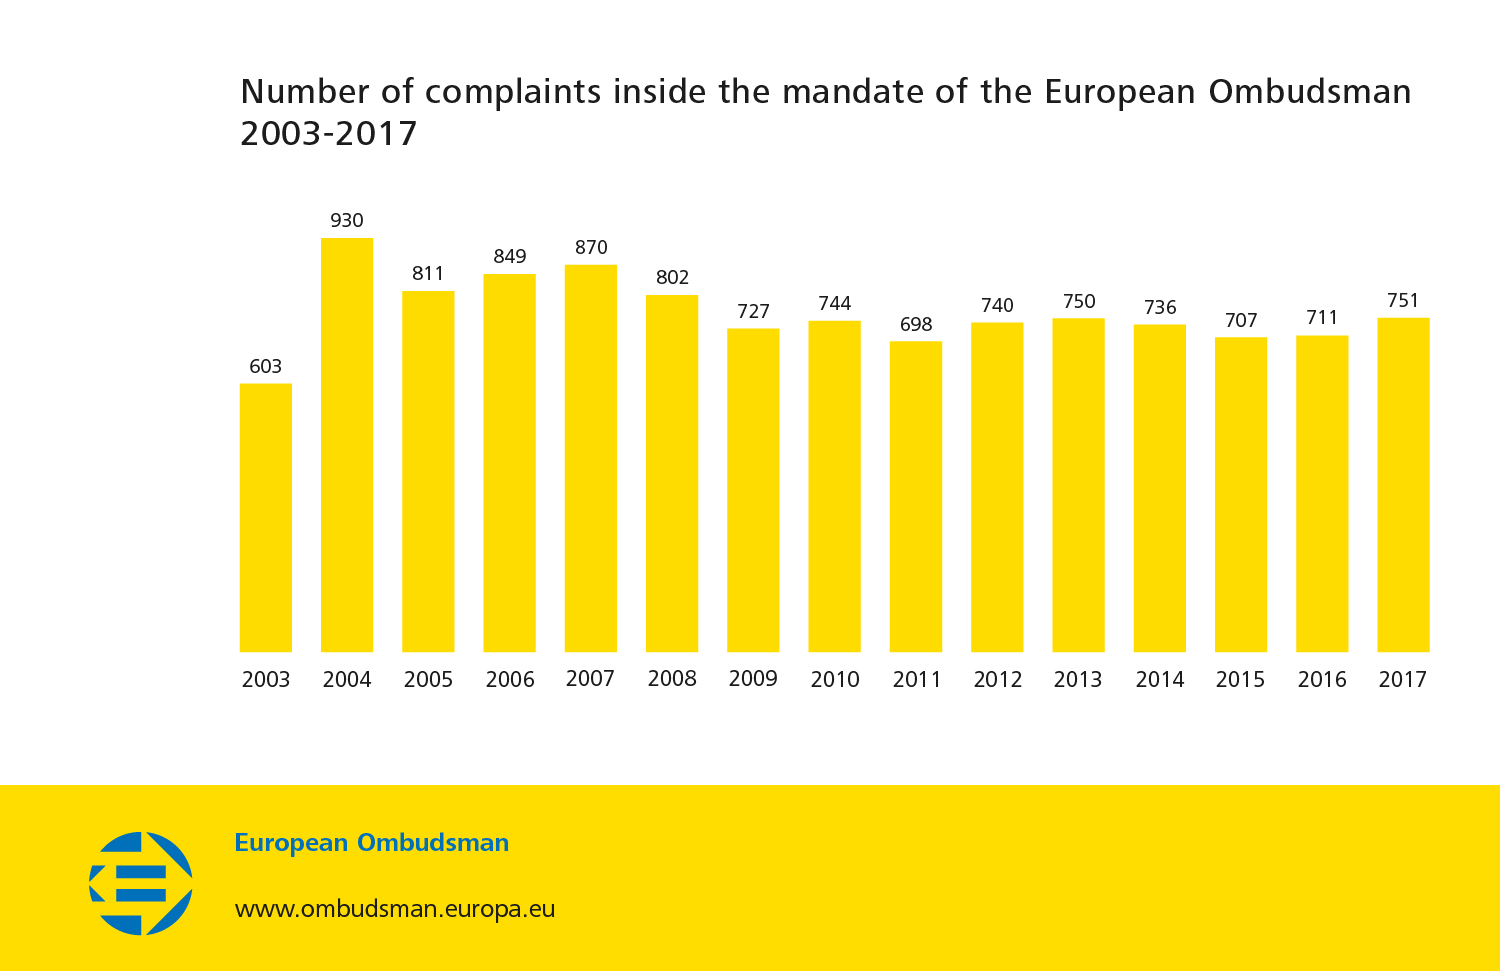 Number of complaints inside the mandate of the European Ombudsman 2003-2017